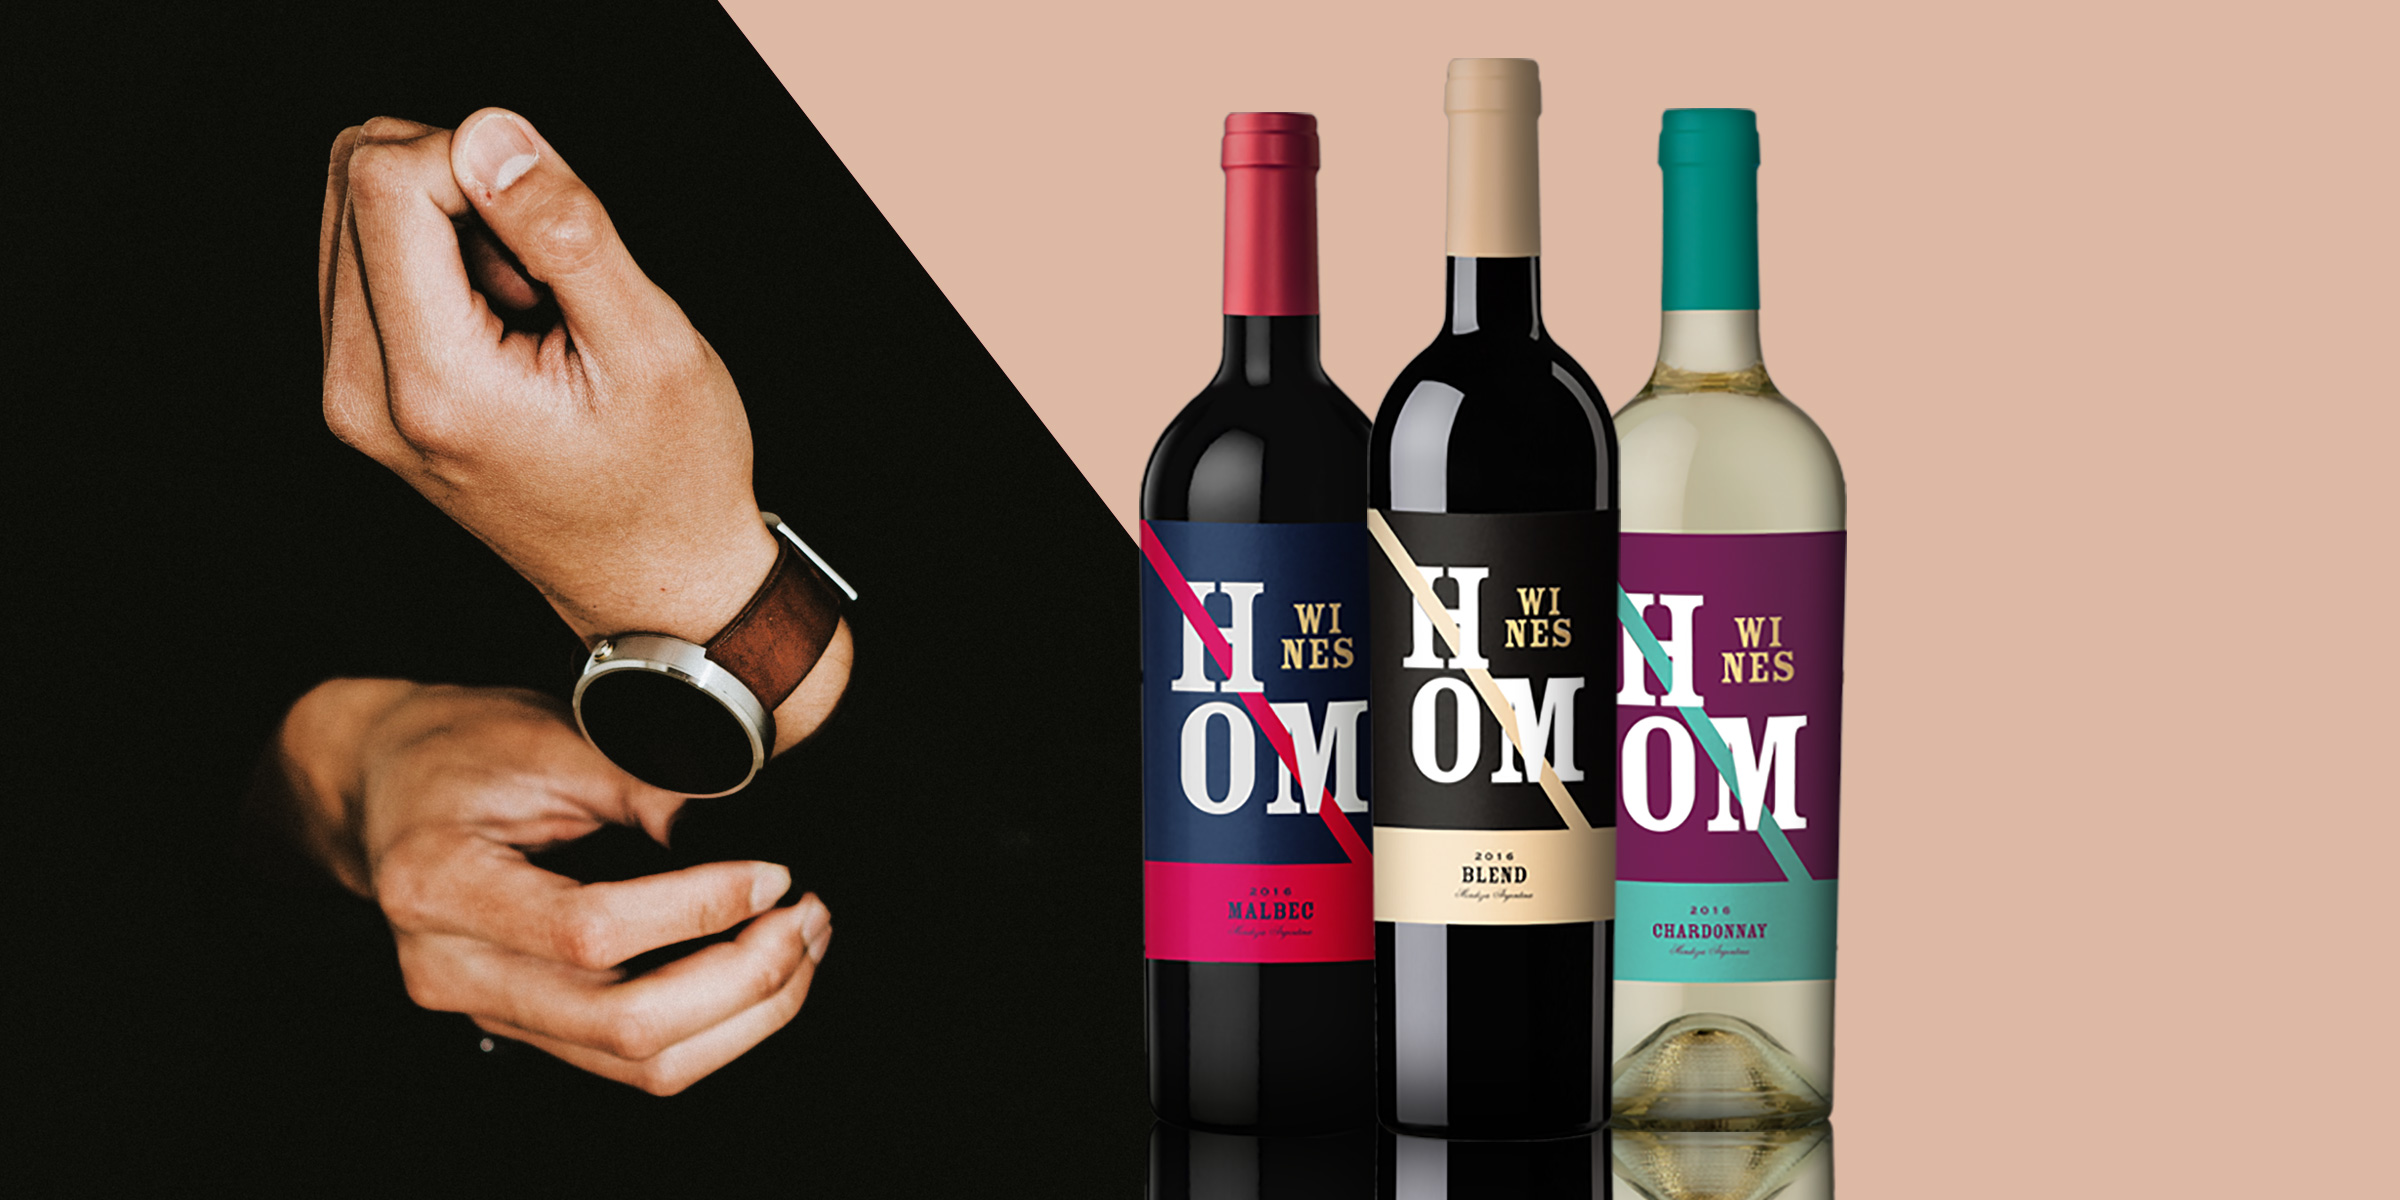 Hom wines ancho completo